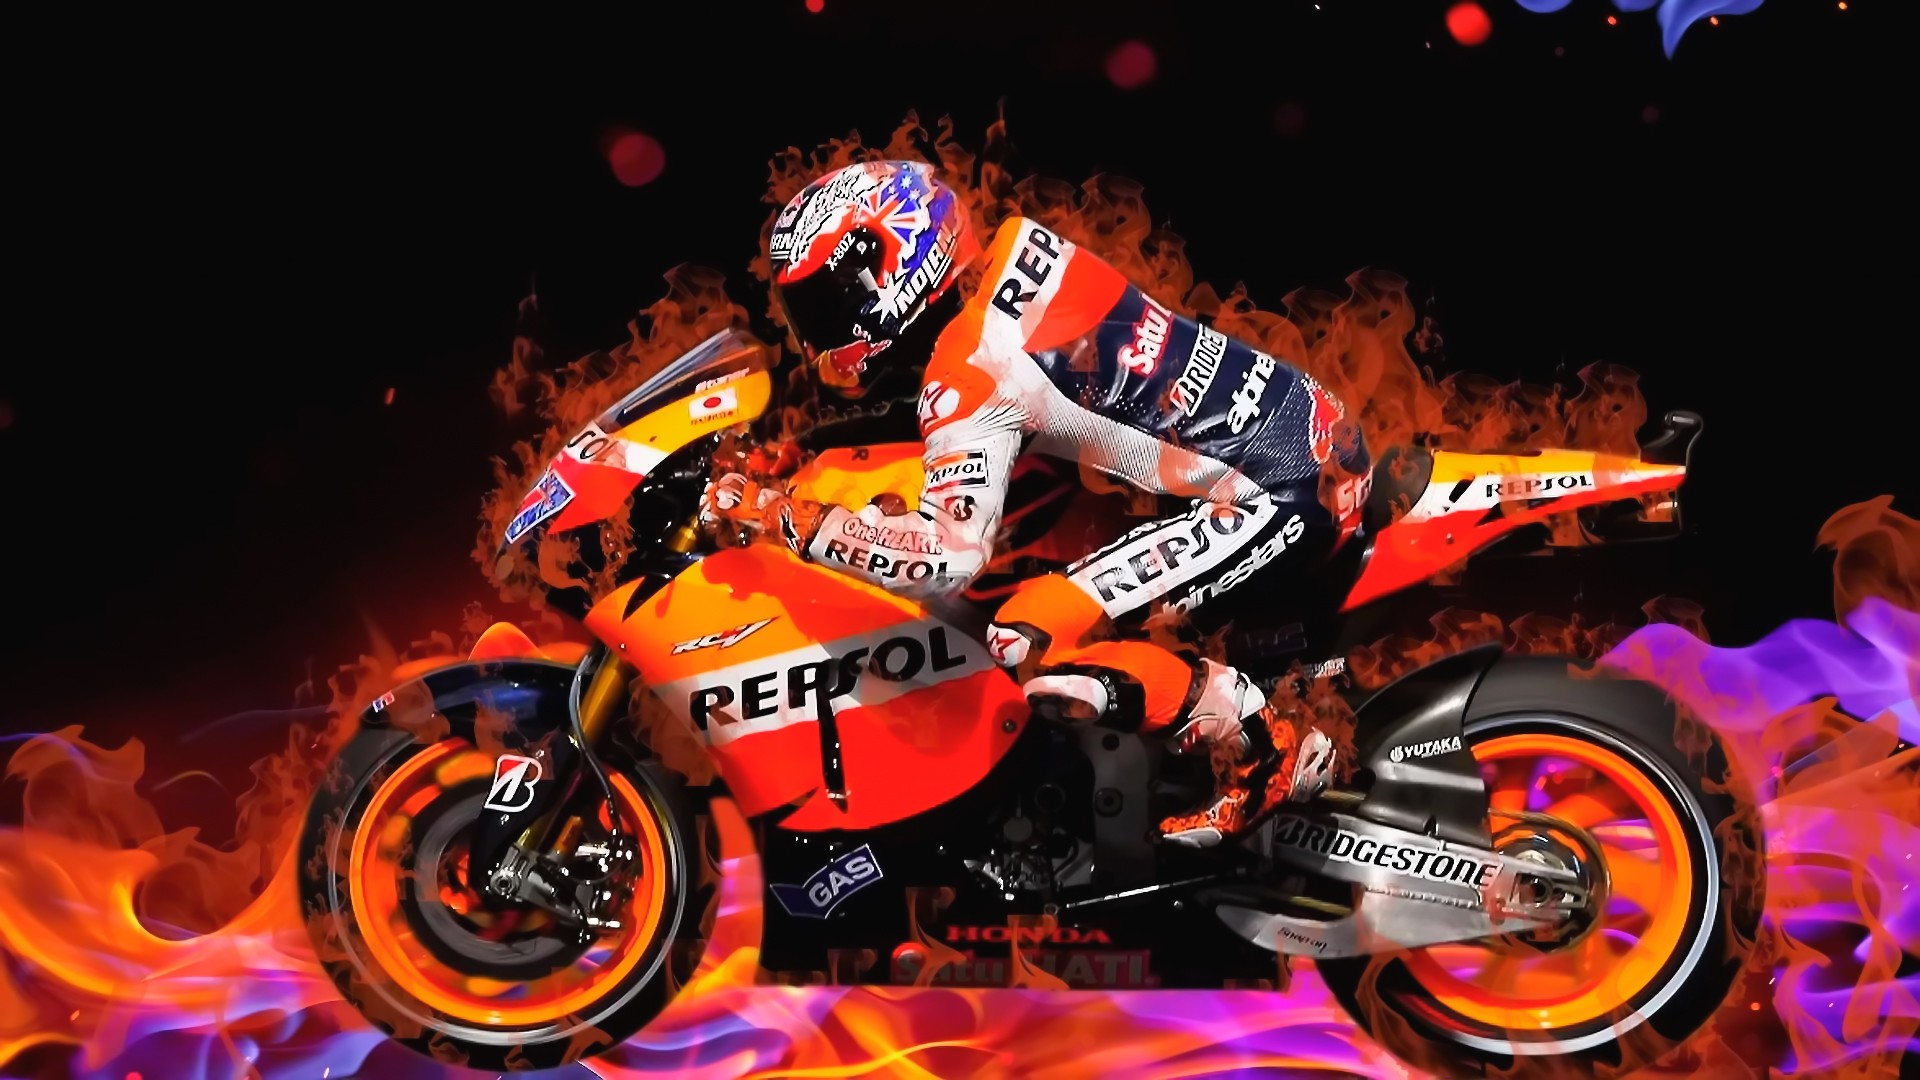 Motor Racing Wallpaper >> Motorcycle Racing Wallpapers Pictures Images